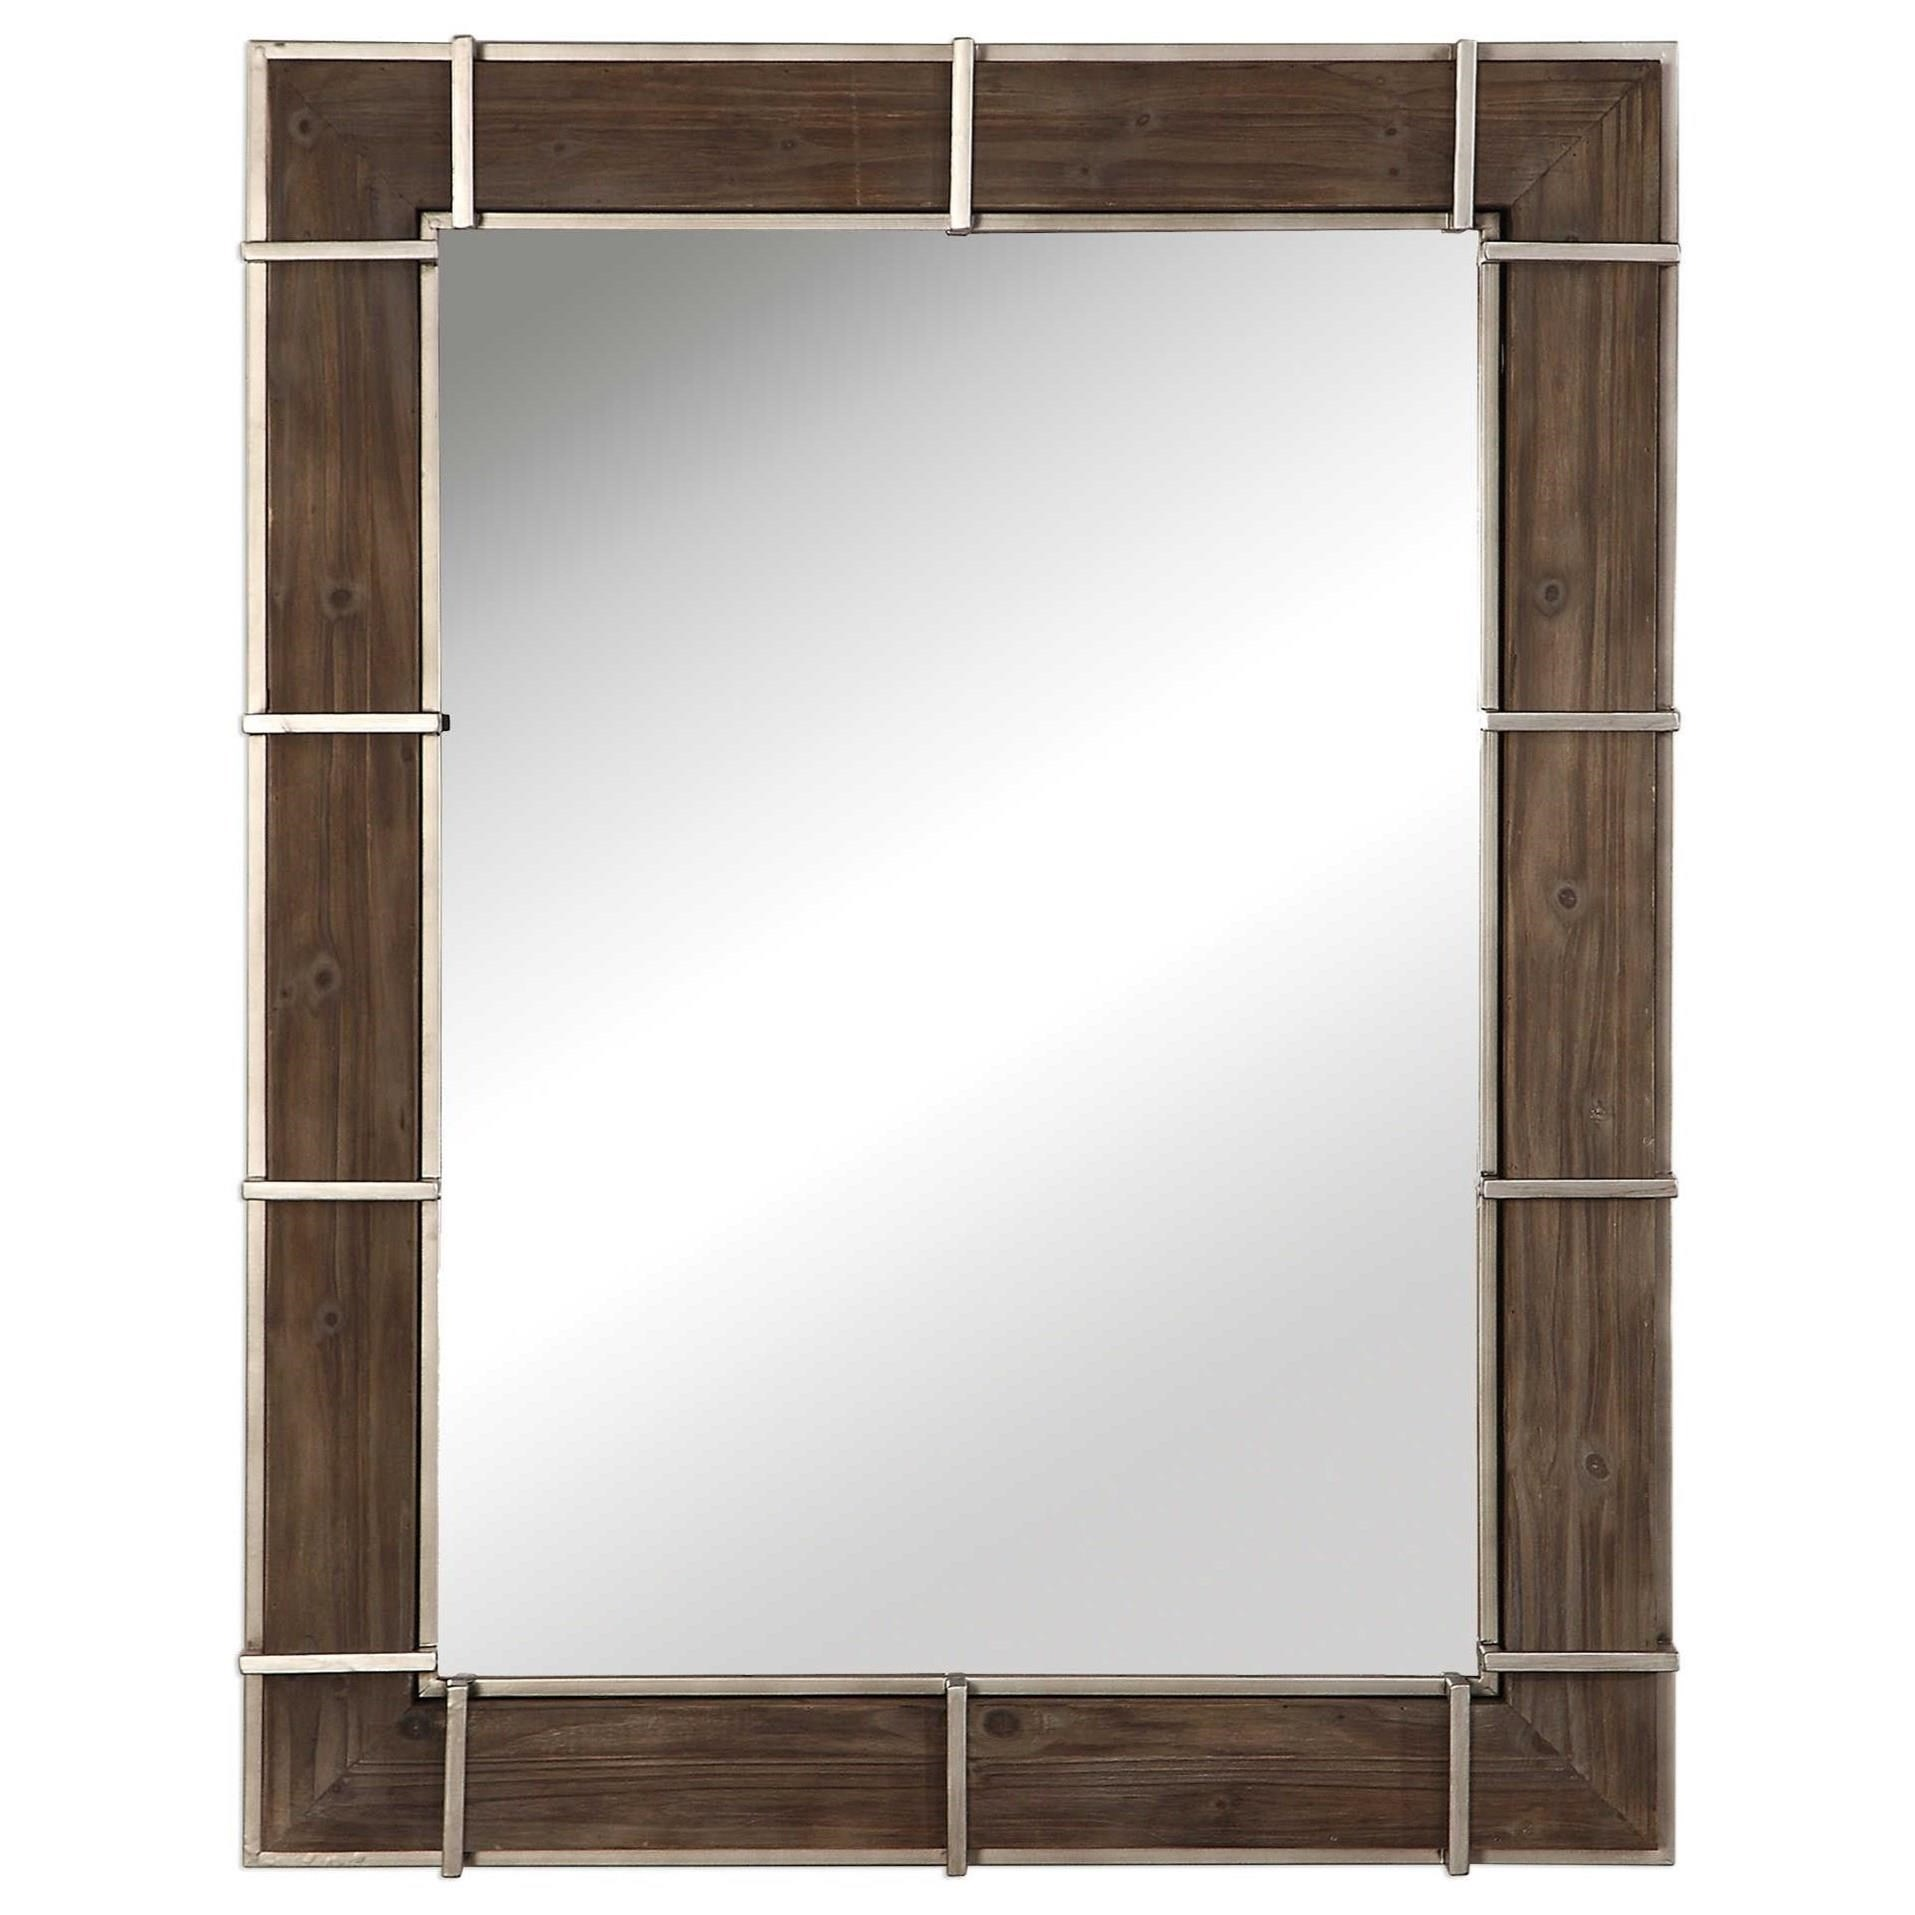 Mirrors Wade Wooden Industrial Mirror by Uttermost at Wayside Furniture